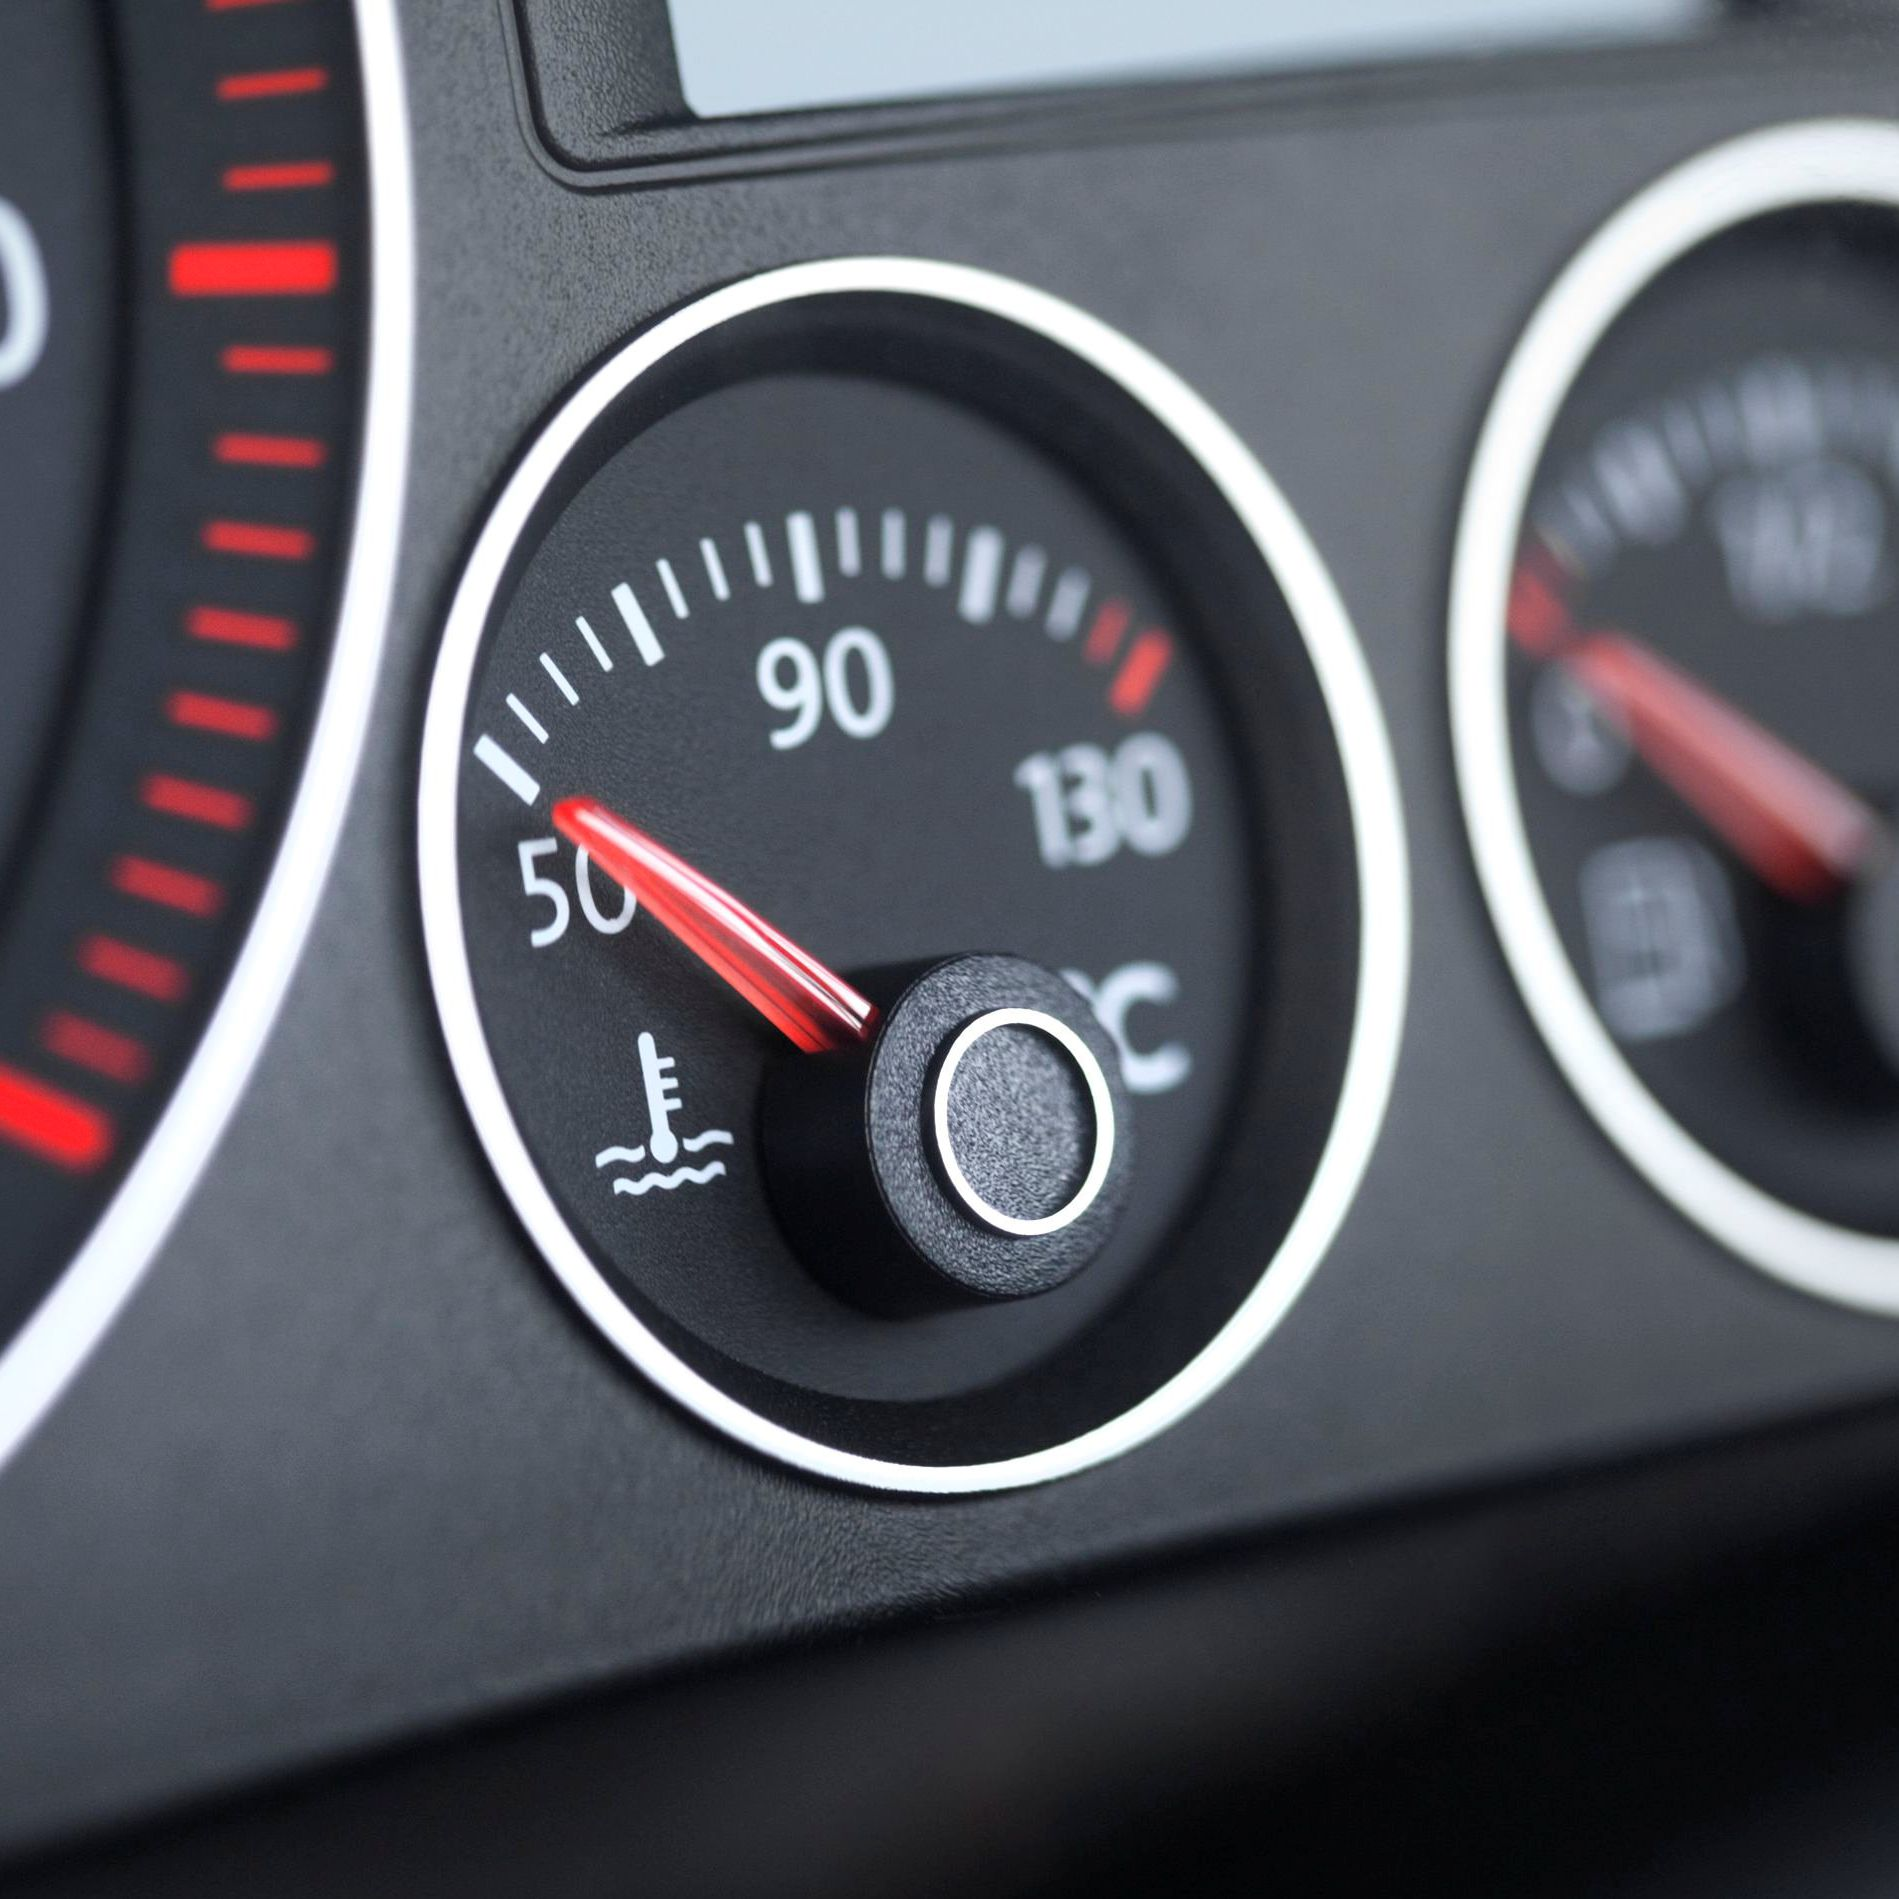 Gauges in Your Car Not Working? Try These Fixes